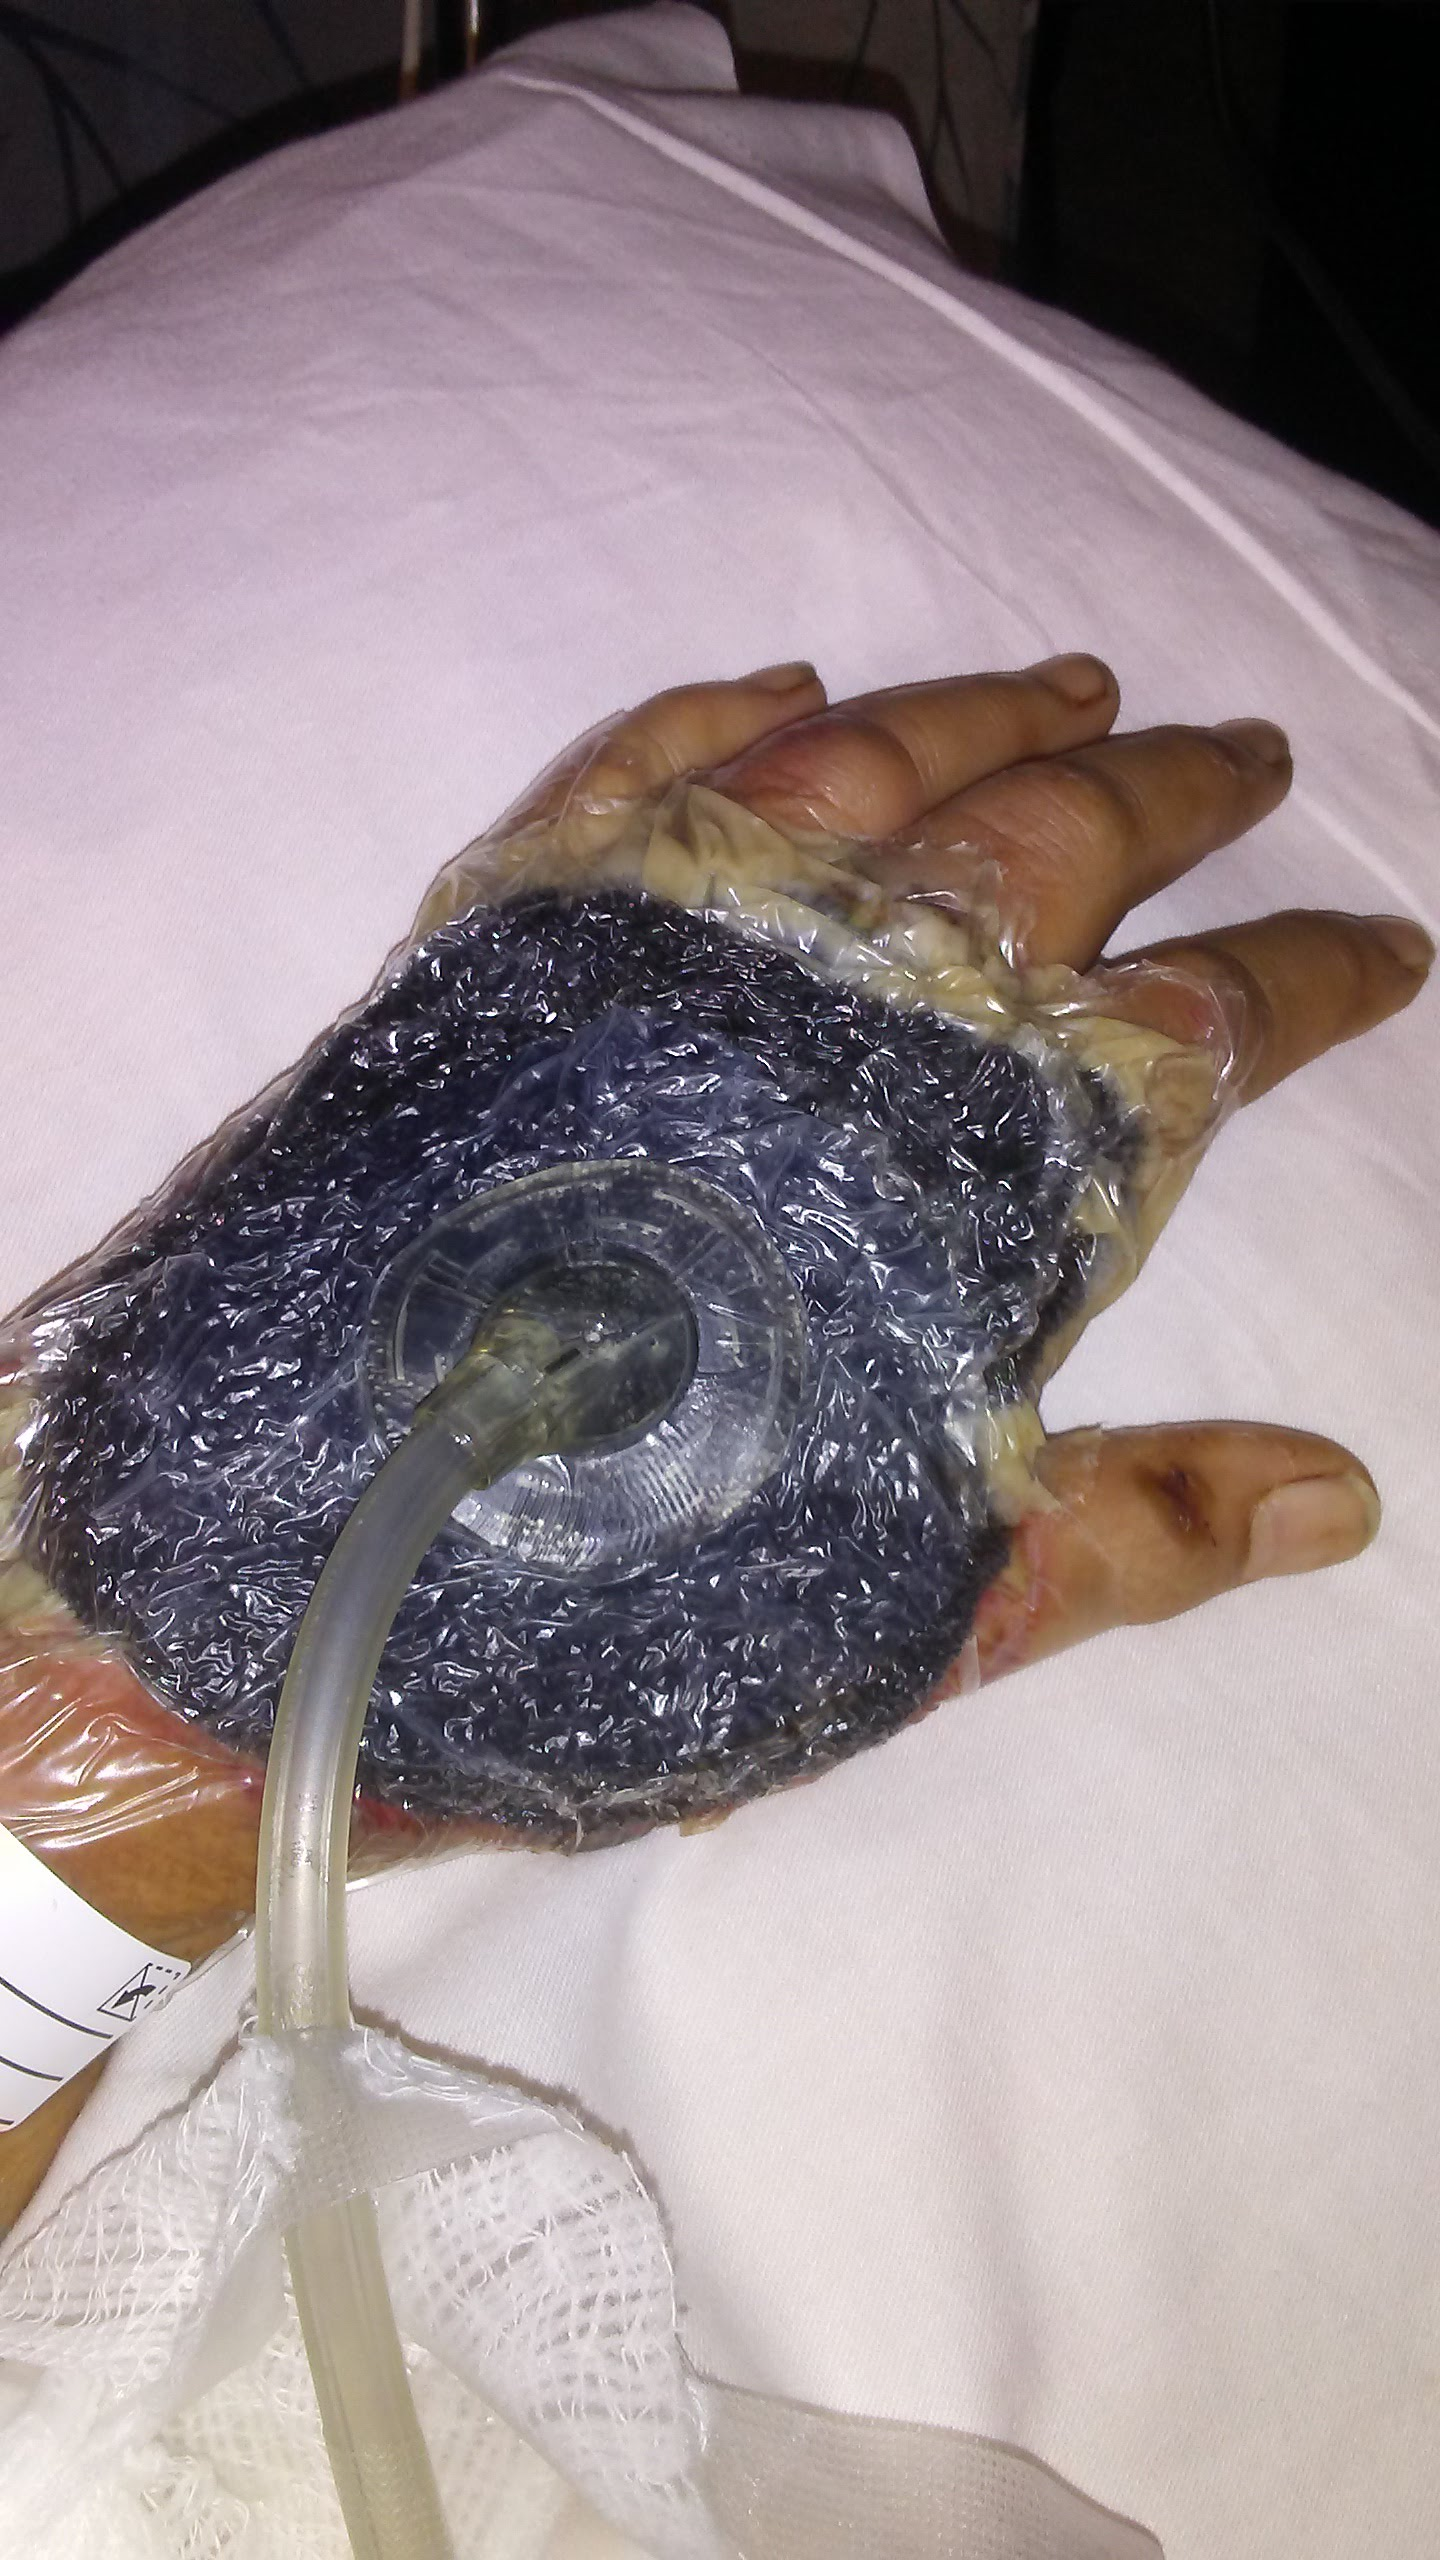 A vac seal covering the 49-year-old Hawaii woman's staph infection on her hand.